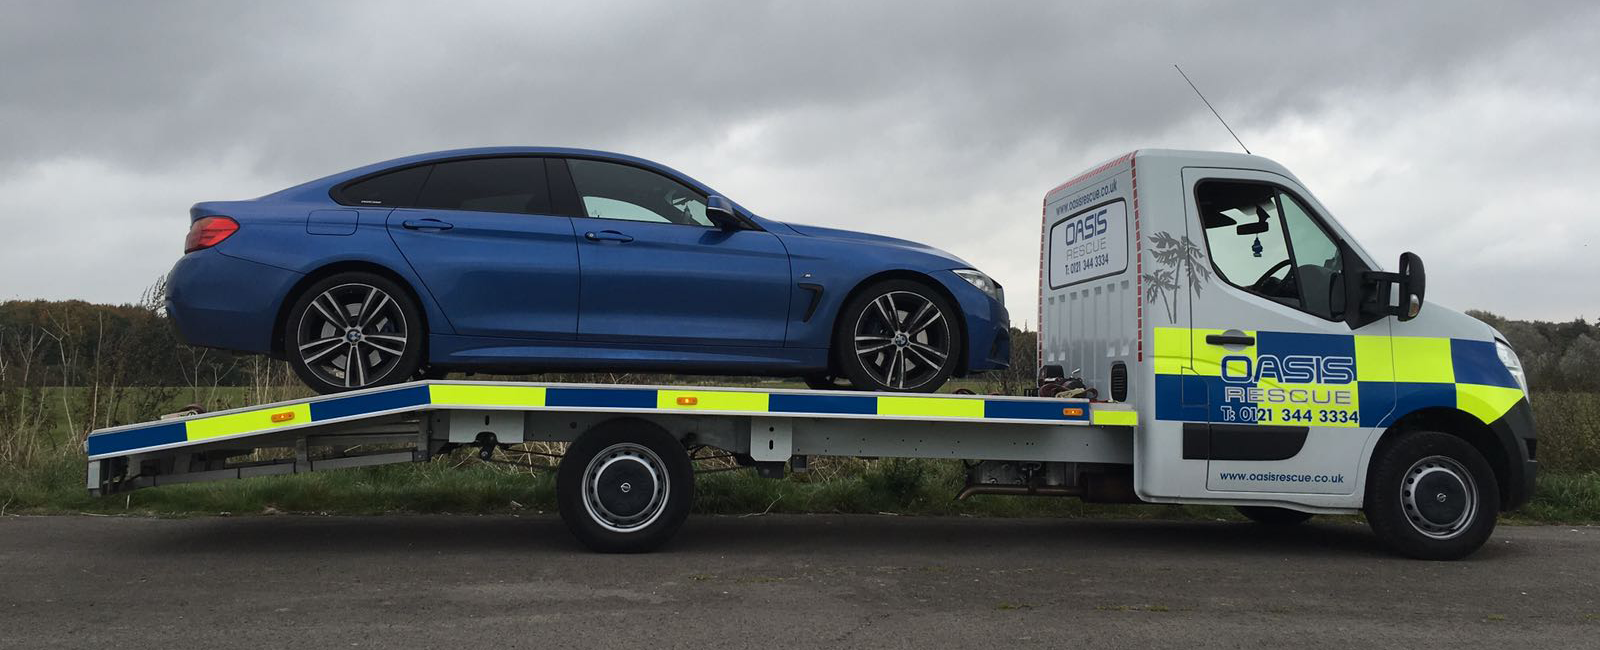 Oasis Rescue Branded Car Transporter - Loaded